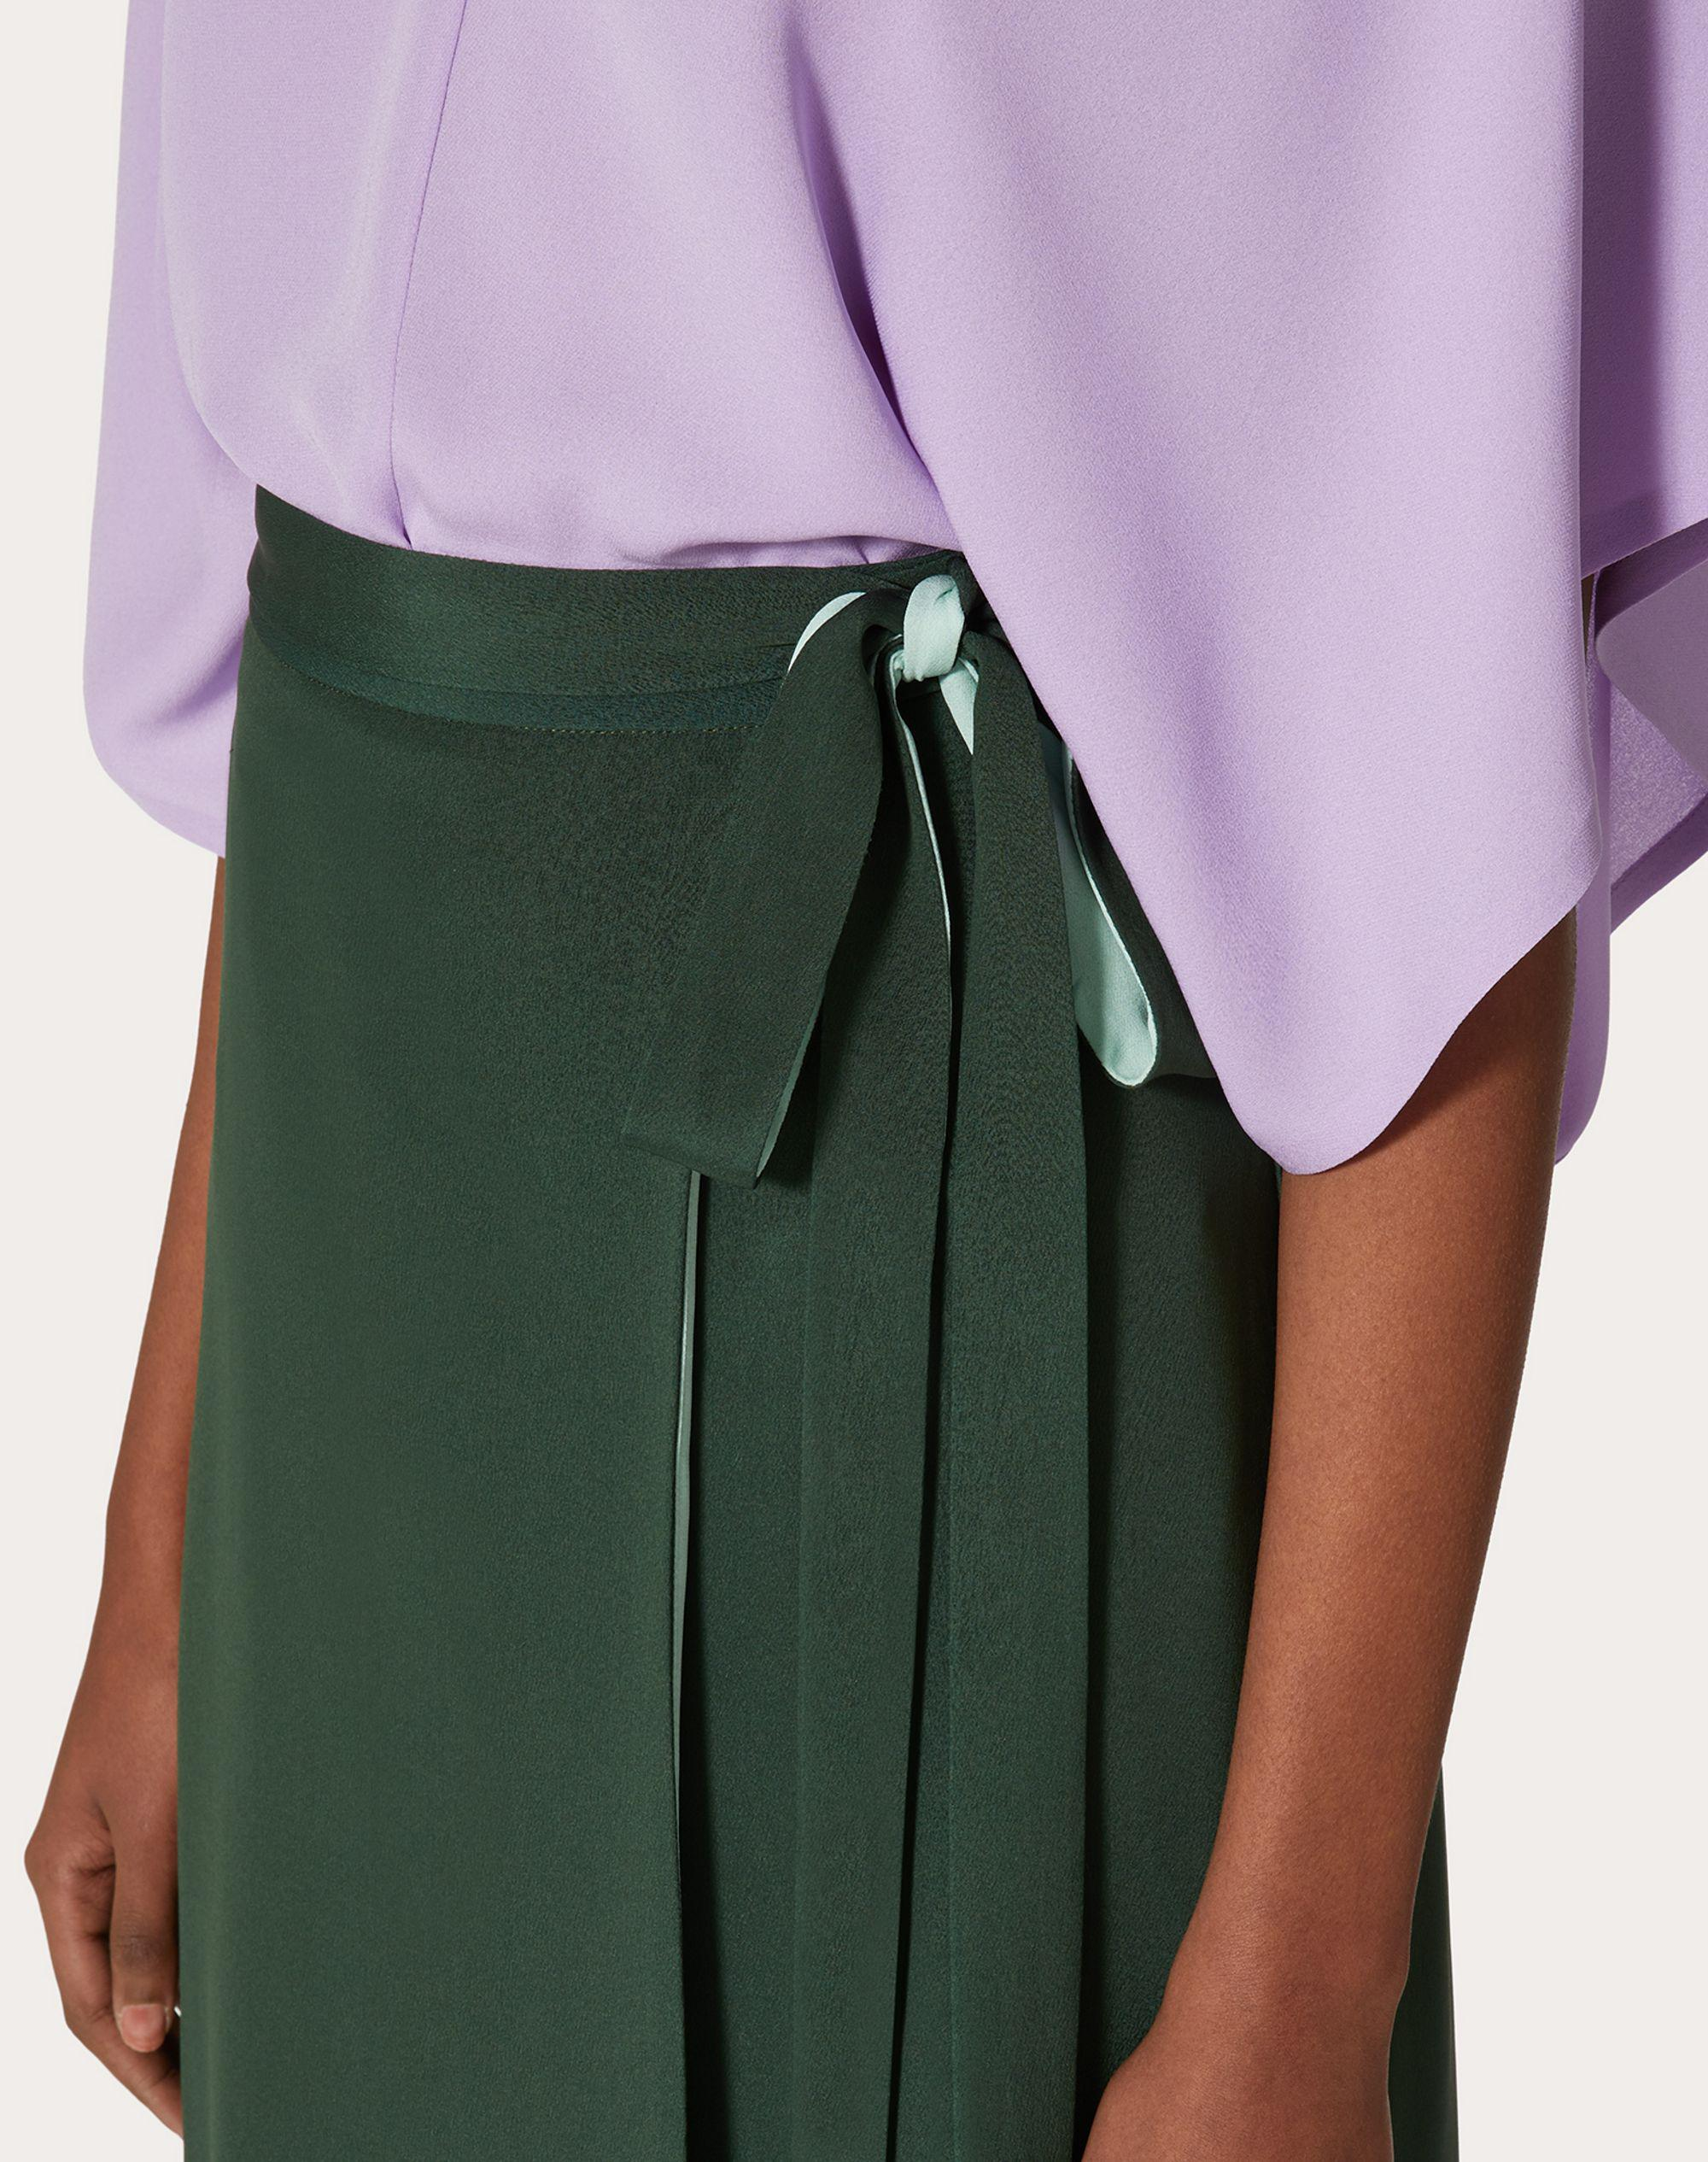 CADY COUTURE WRAP SKIRT 4